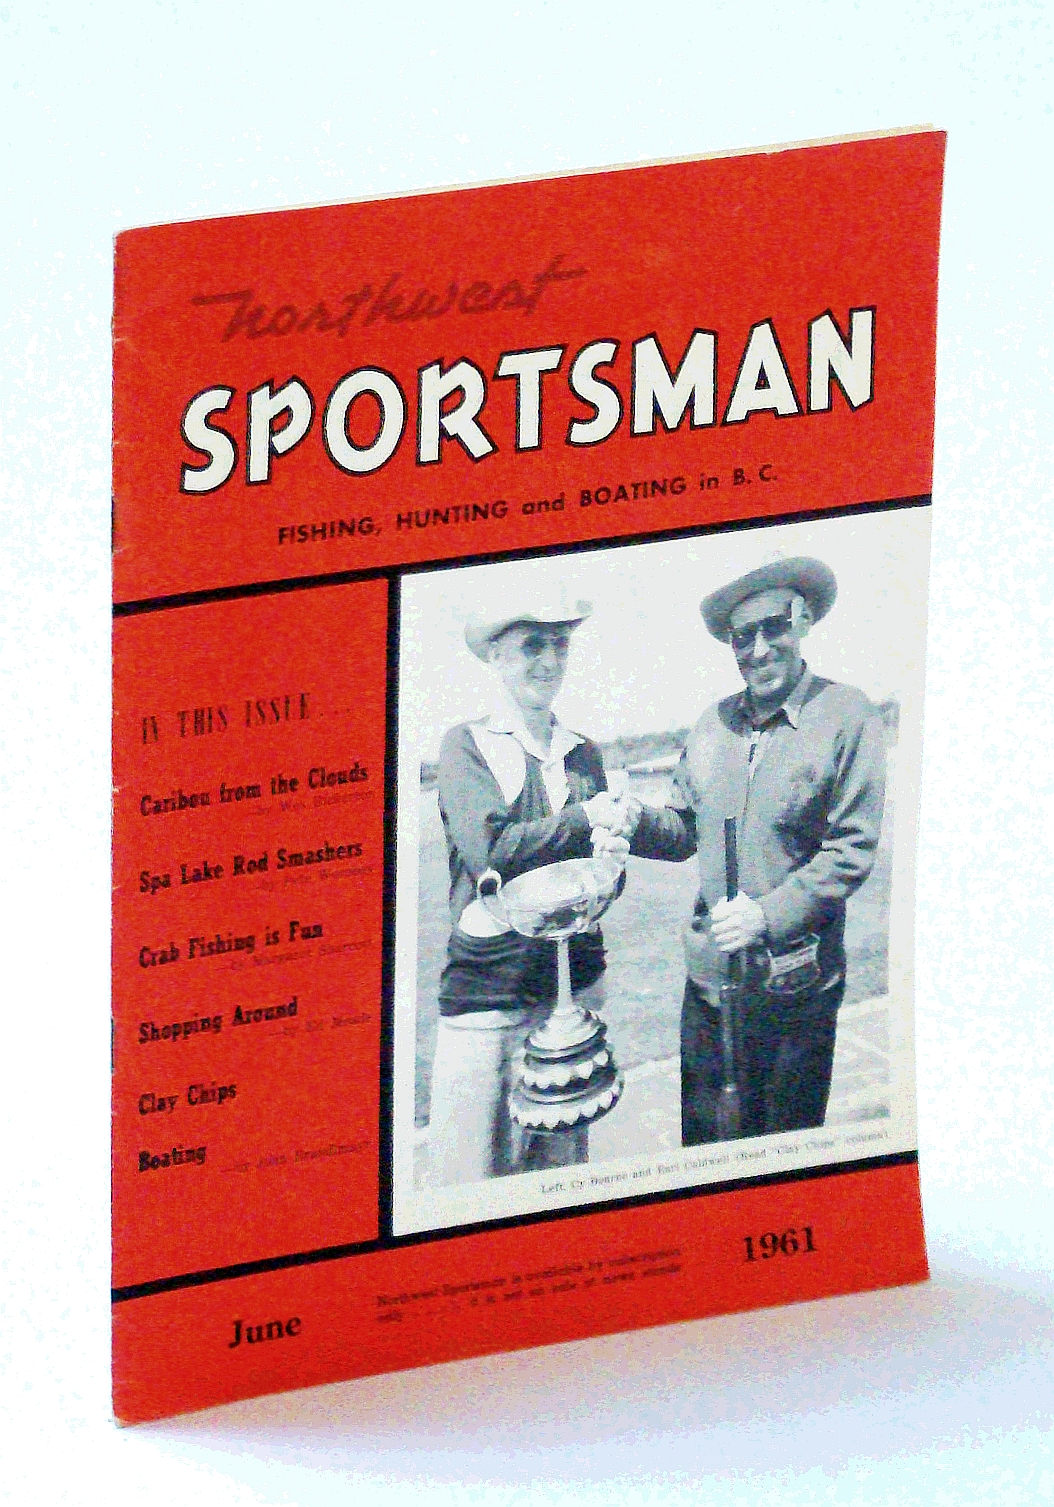 Image for Northwest Sportsman Magazine - Fishing, Hunting and Boating in B.C., June 1961 - Nice Cover Photo of Cy Bourne and Earl Caldwell with Trap Shooting Trophy